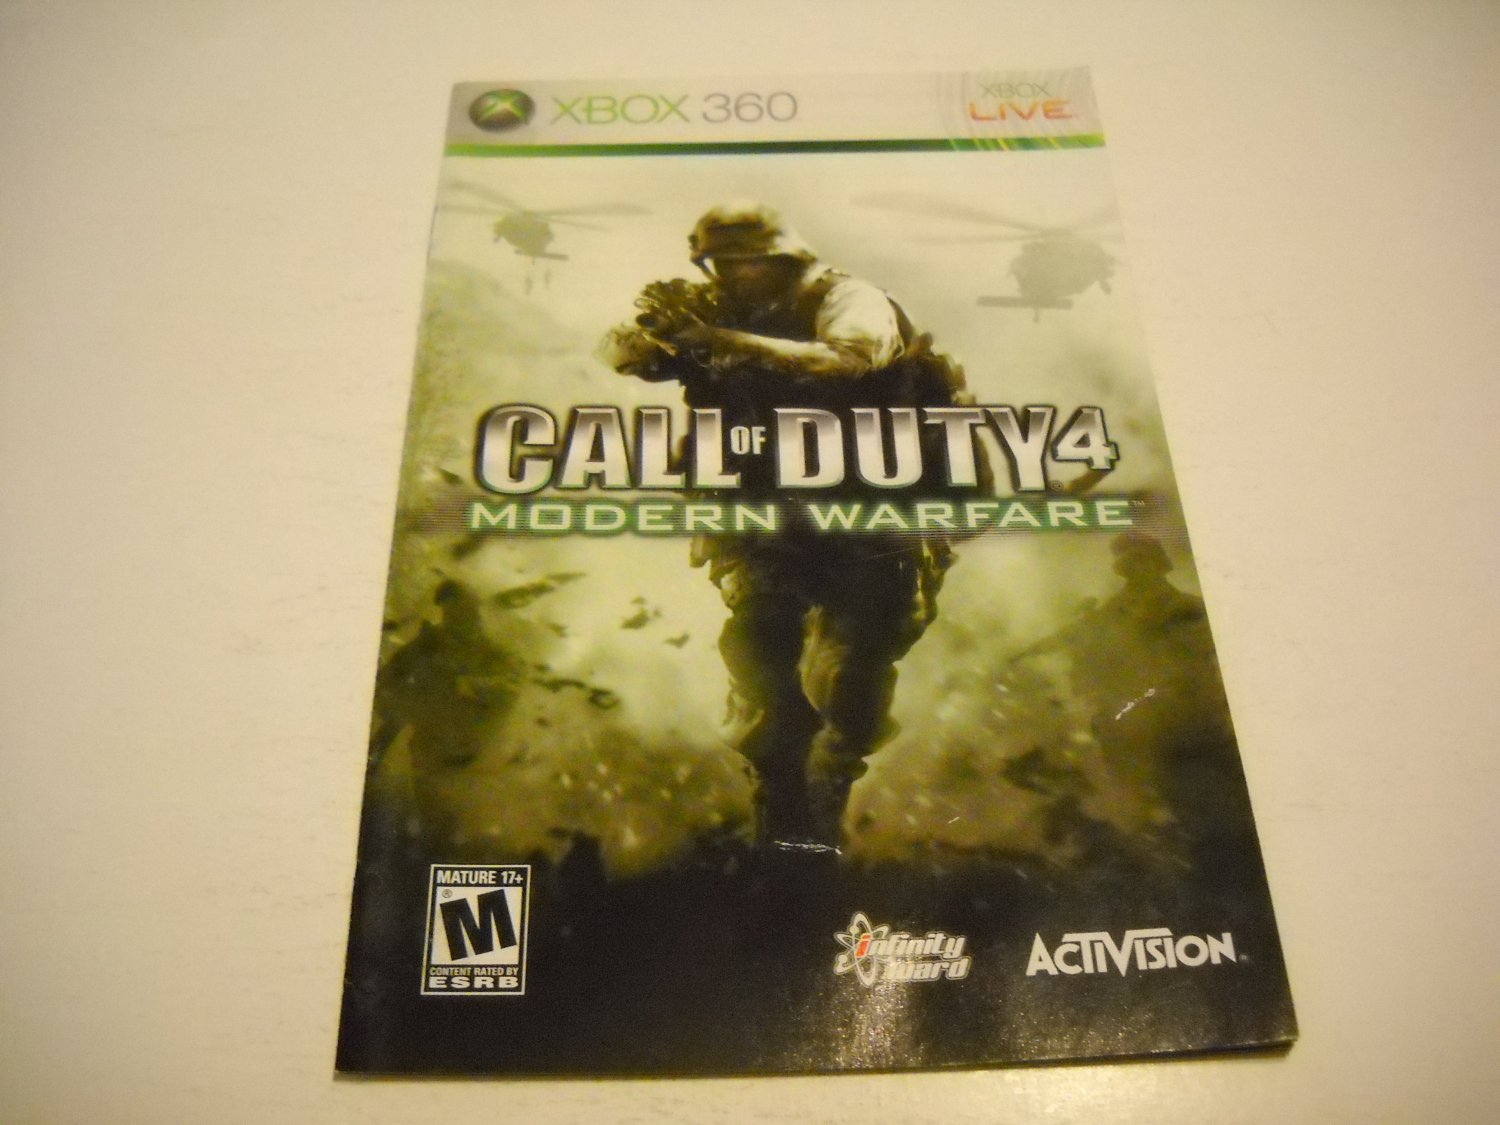 Manual ONLY ~  for Call of Duty 4 Modern Warfare   - Xbox 360 Instruction Booklet